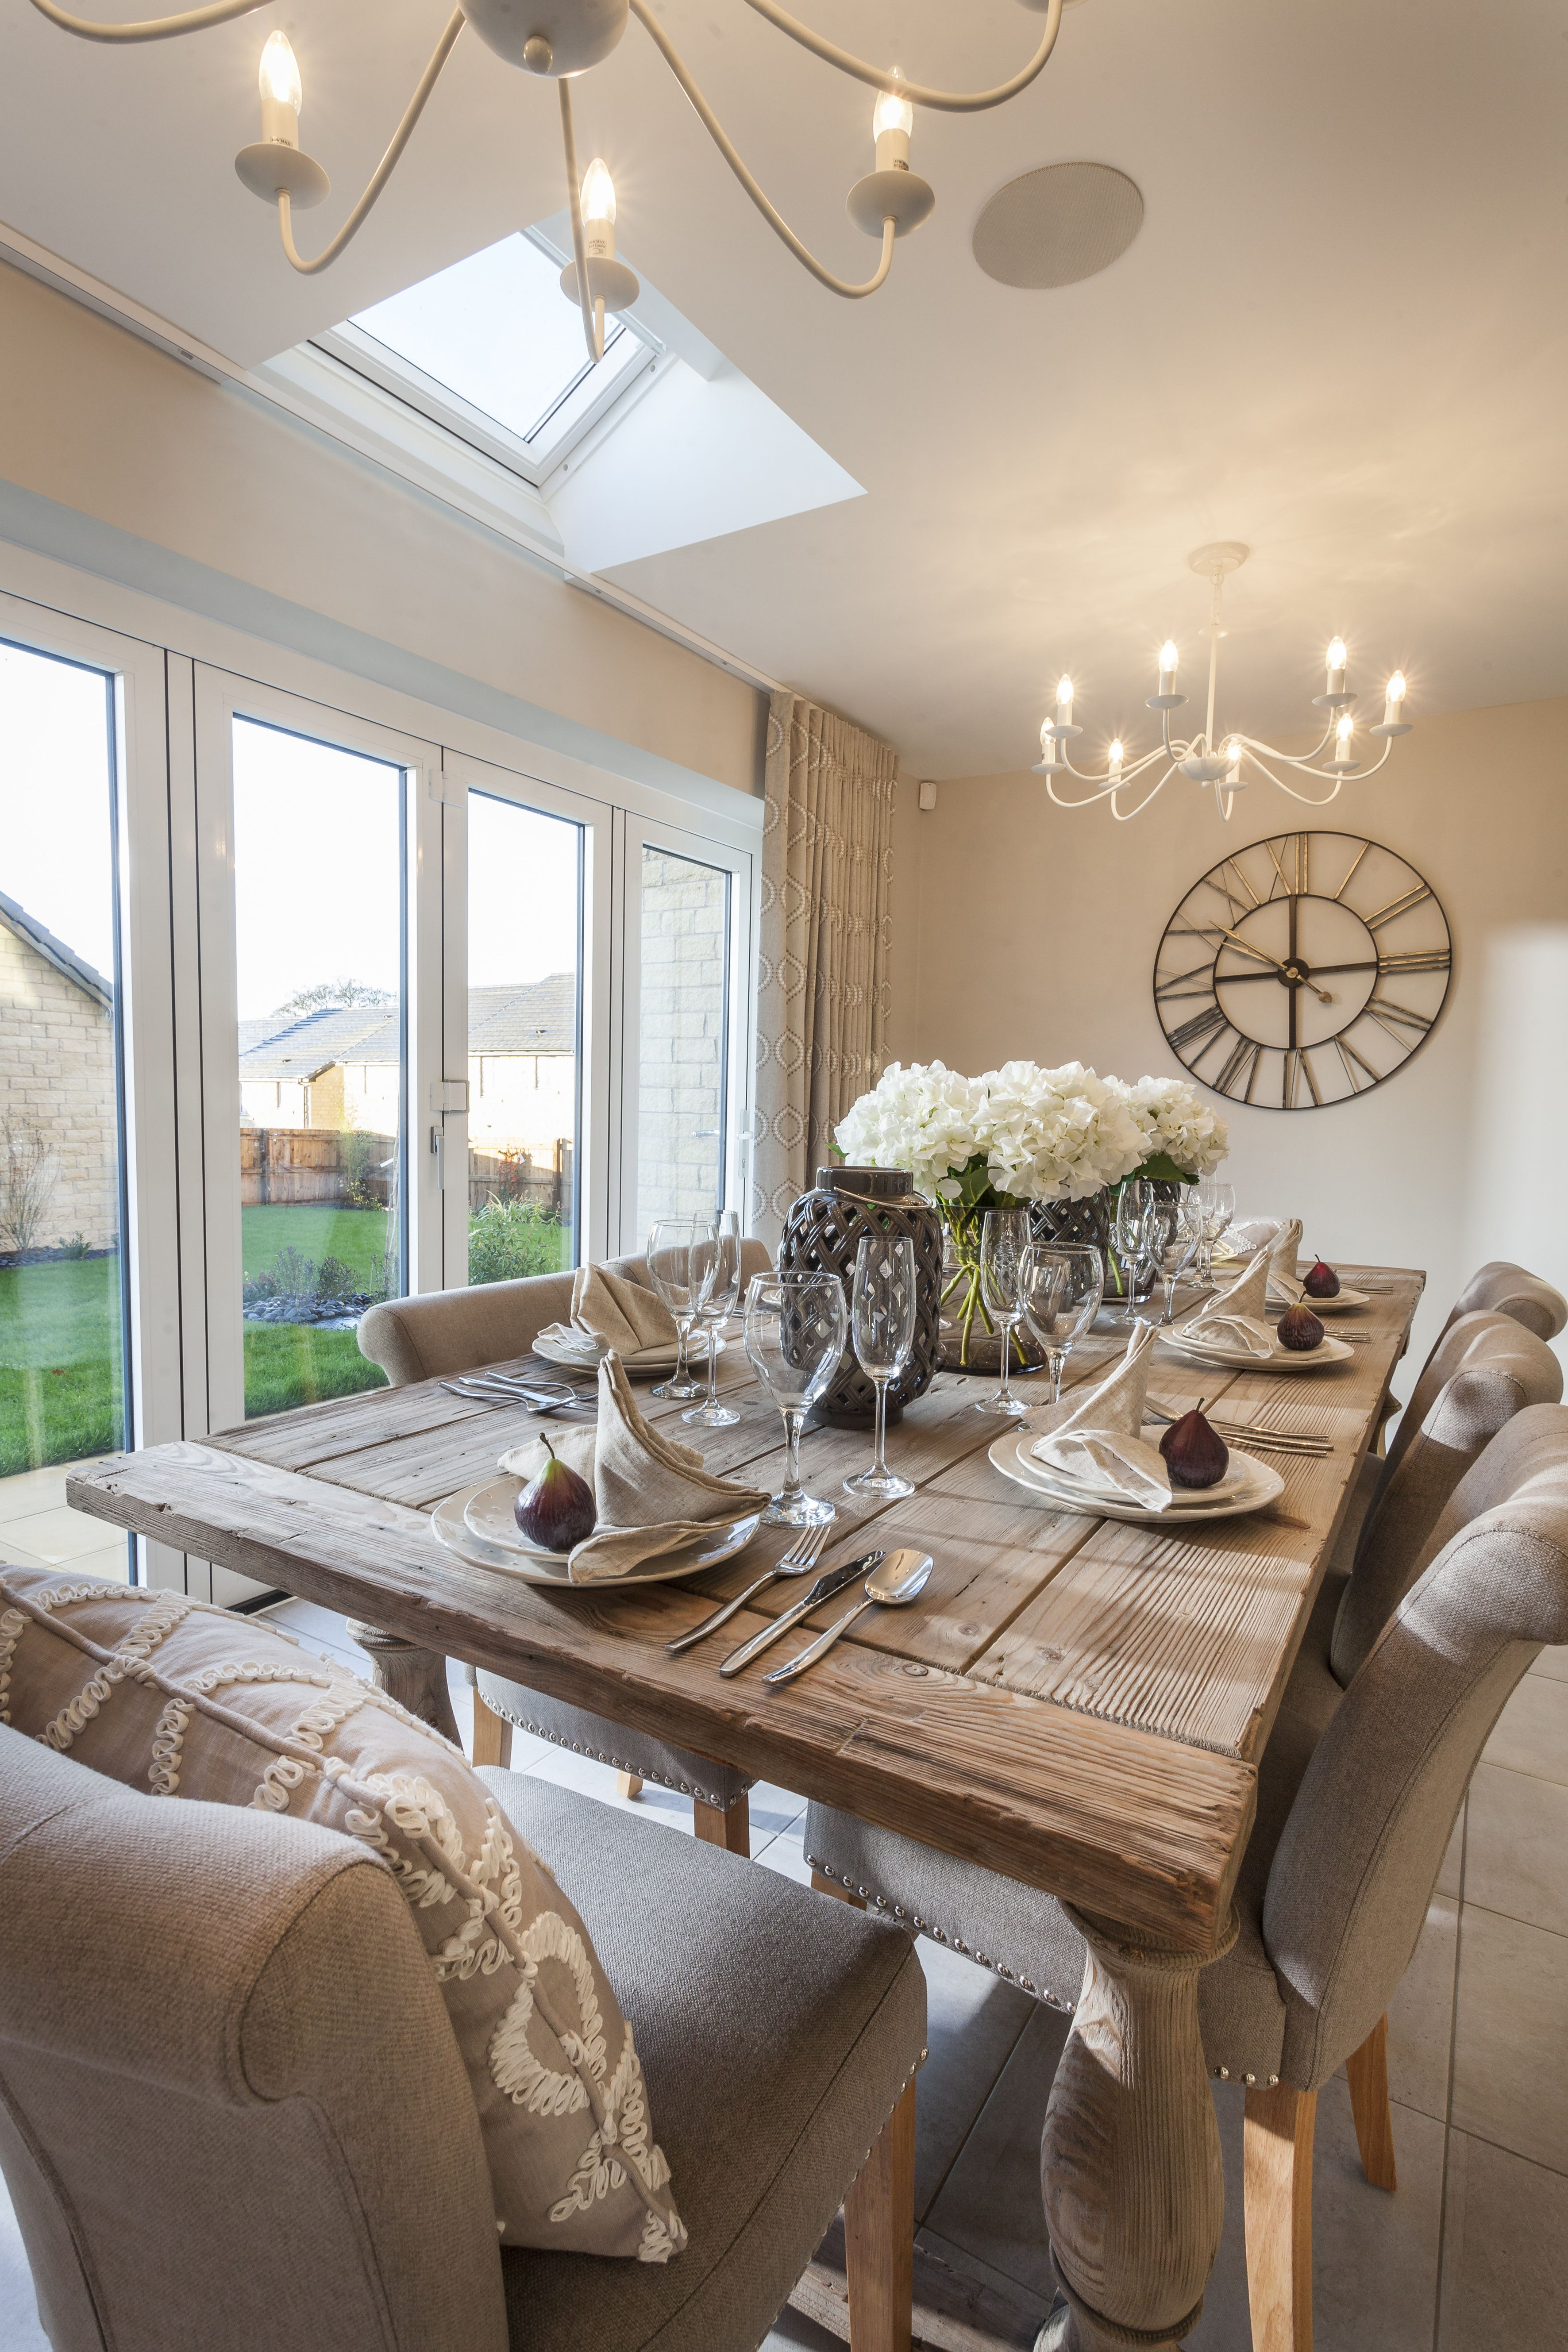 The Coppice Home, Home decor, Rustic dining table